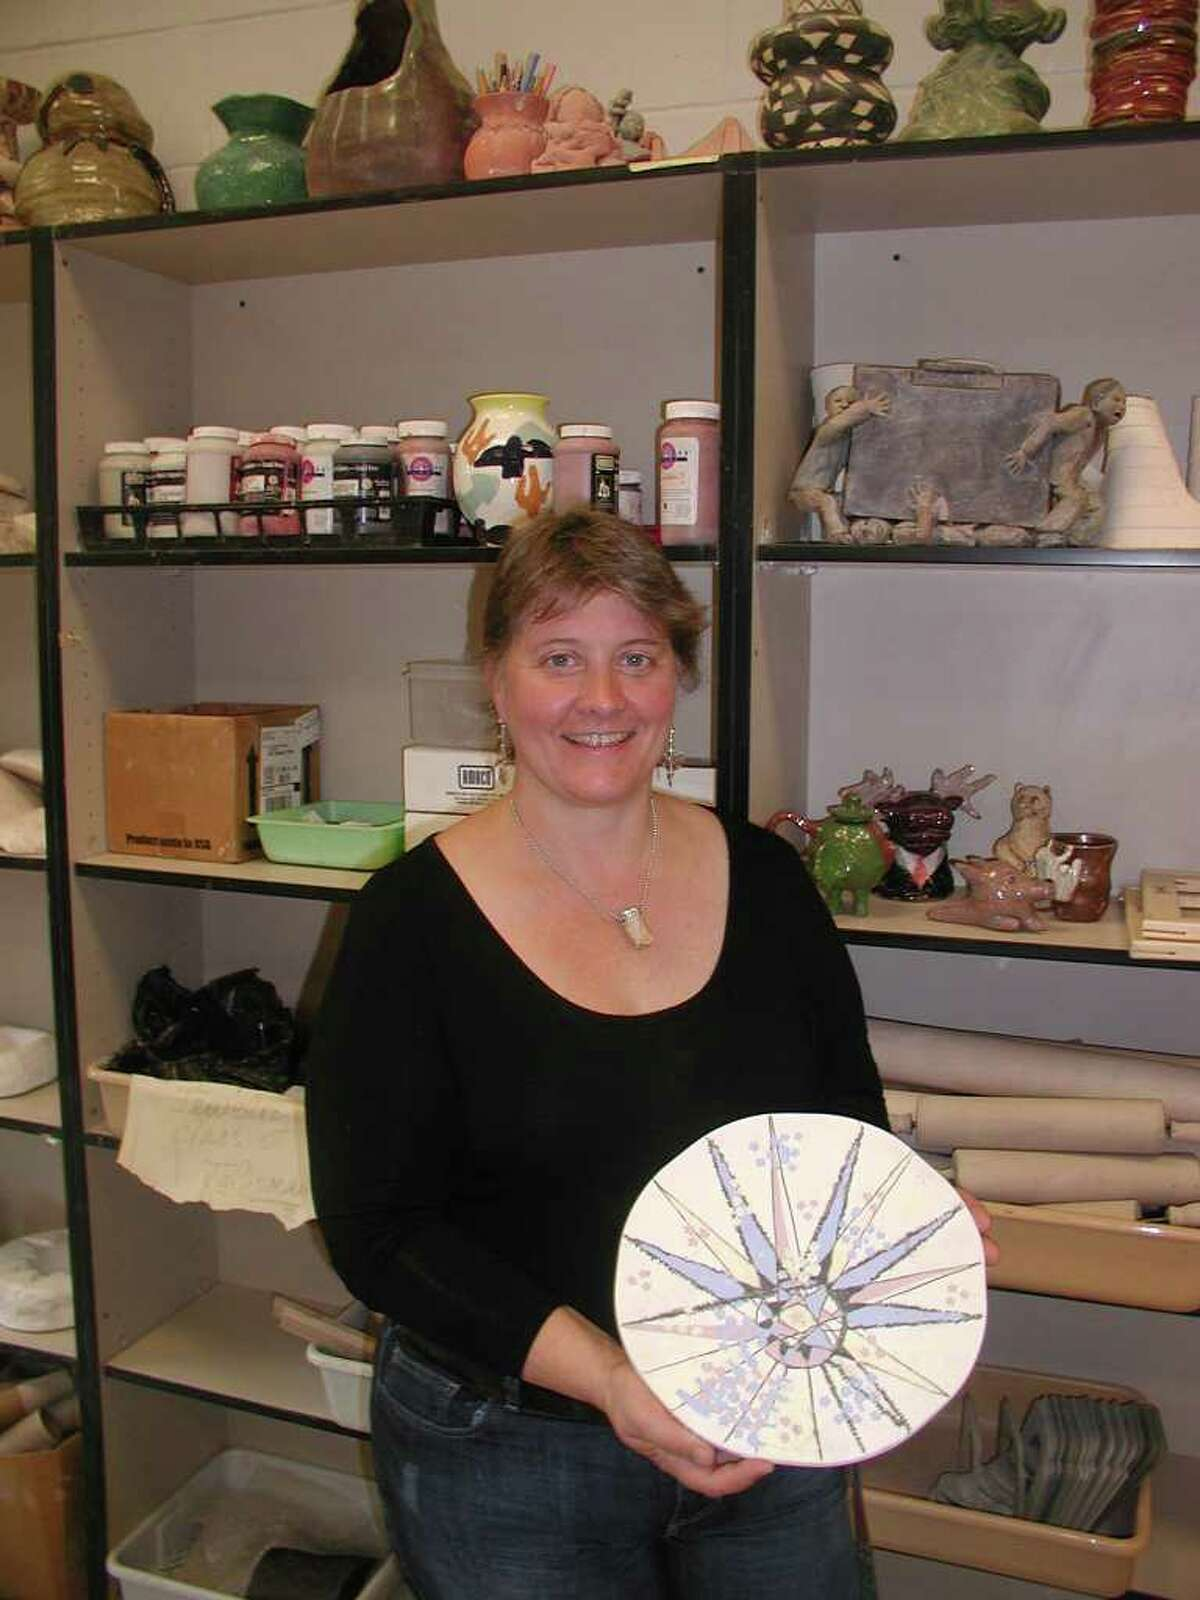 Lisa Floryshak-Windman, ceramics teacher at New Canaan High School, shows the pre-finished plate she painted that will be glazed, fired and finished into a cakeplate to be auctioned at the 10th anniversary Galaxy of STARS Gala on Nov. 12 at Woodway Country Club.